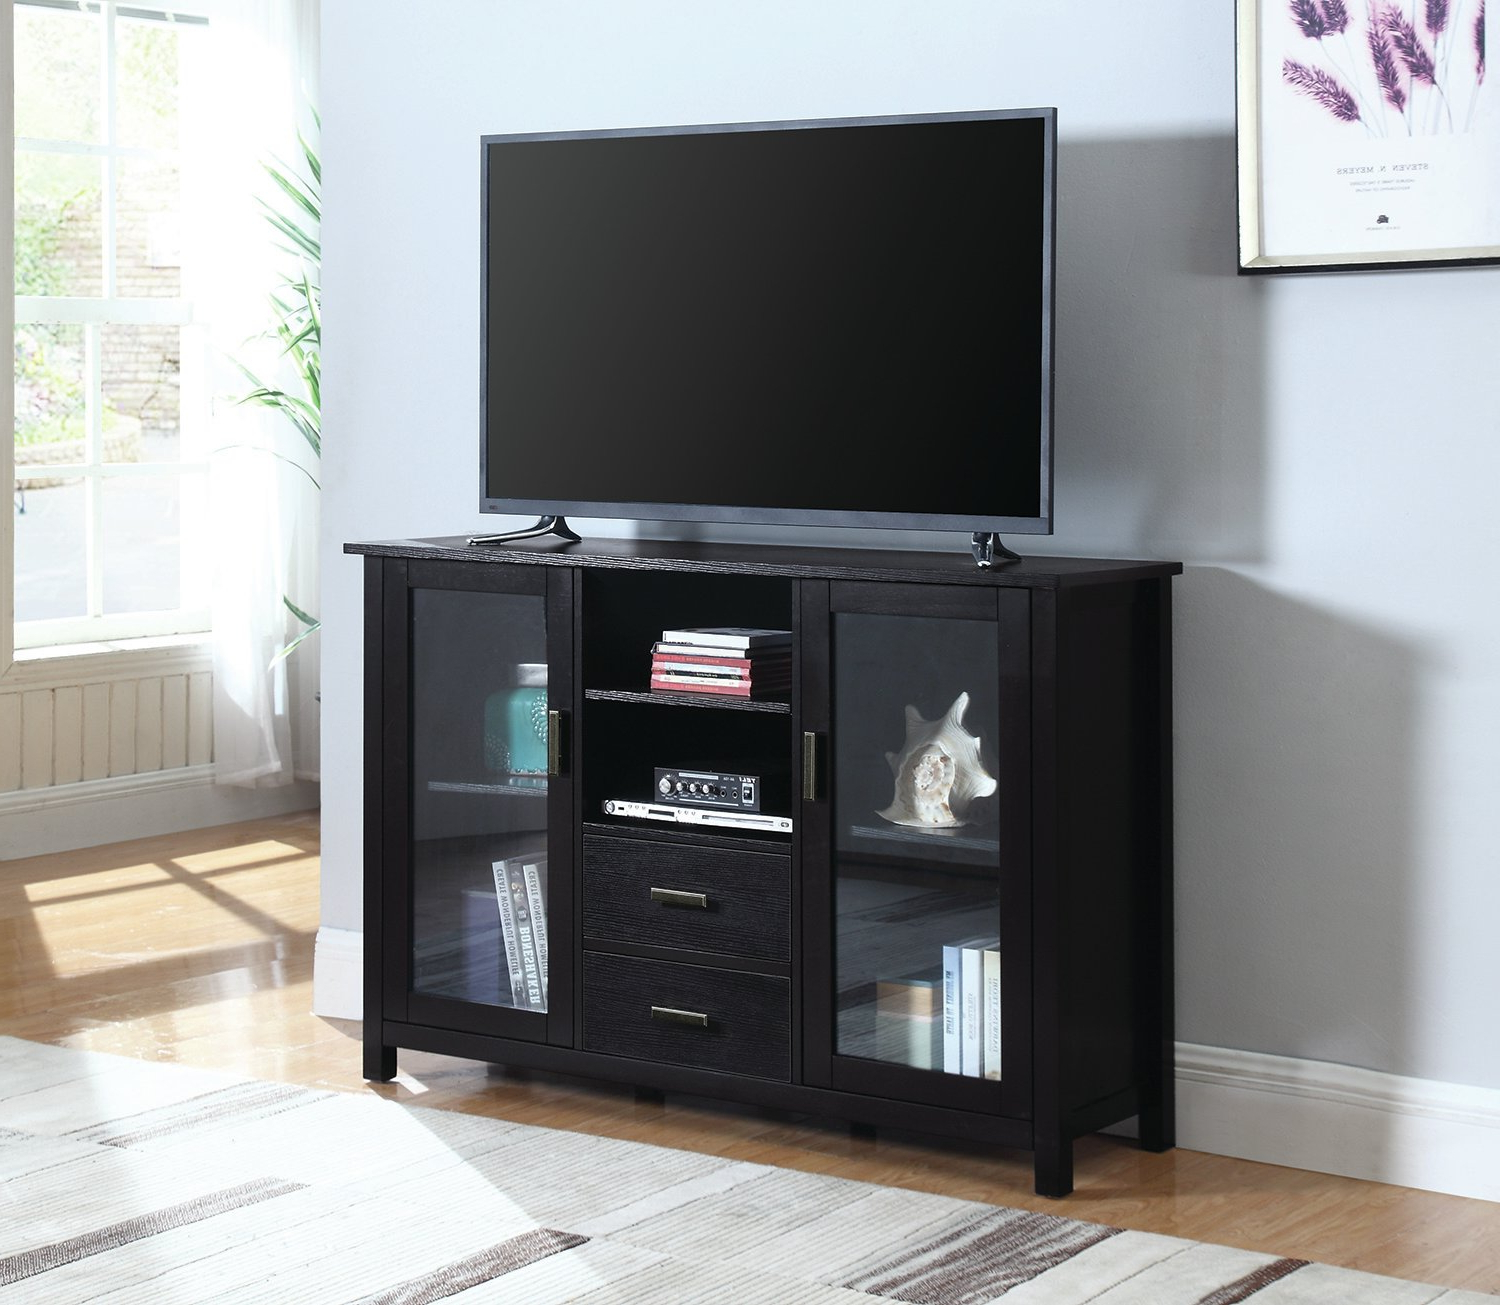 Current 40 49 Inches Tall Tv Stands You'll Love (View 4 of 20)